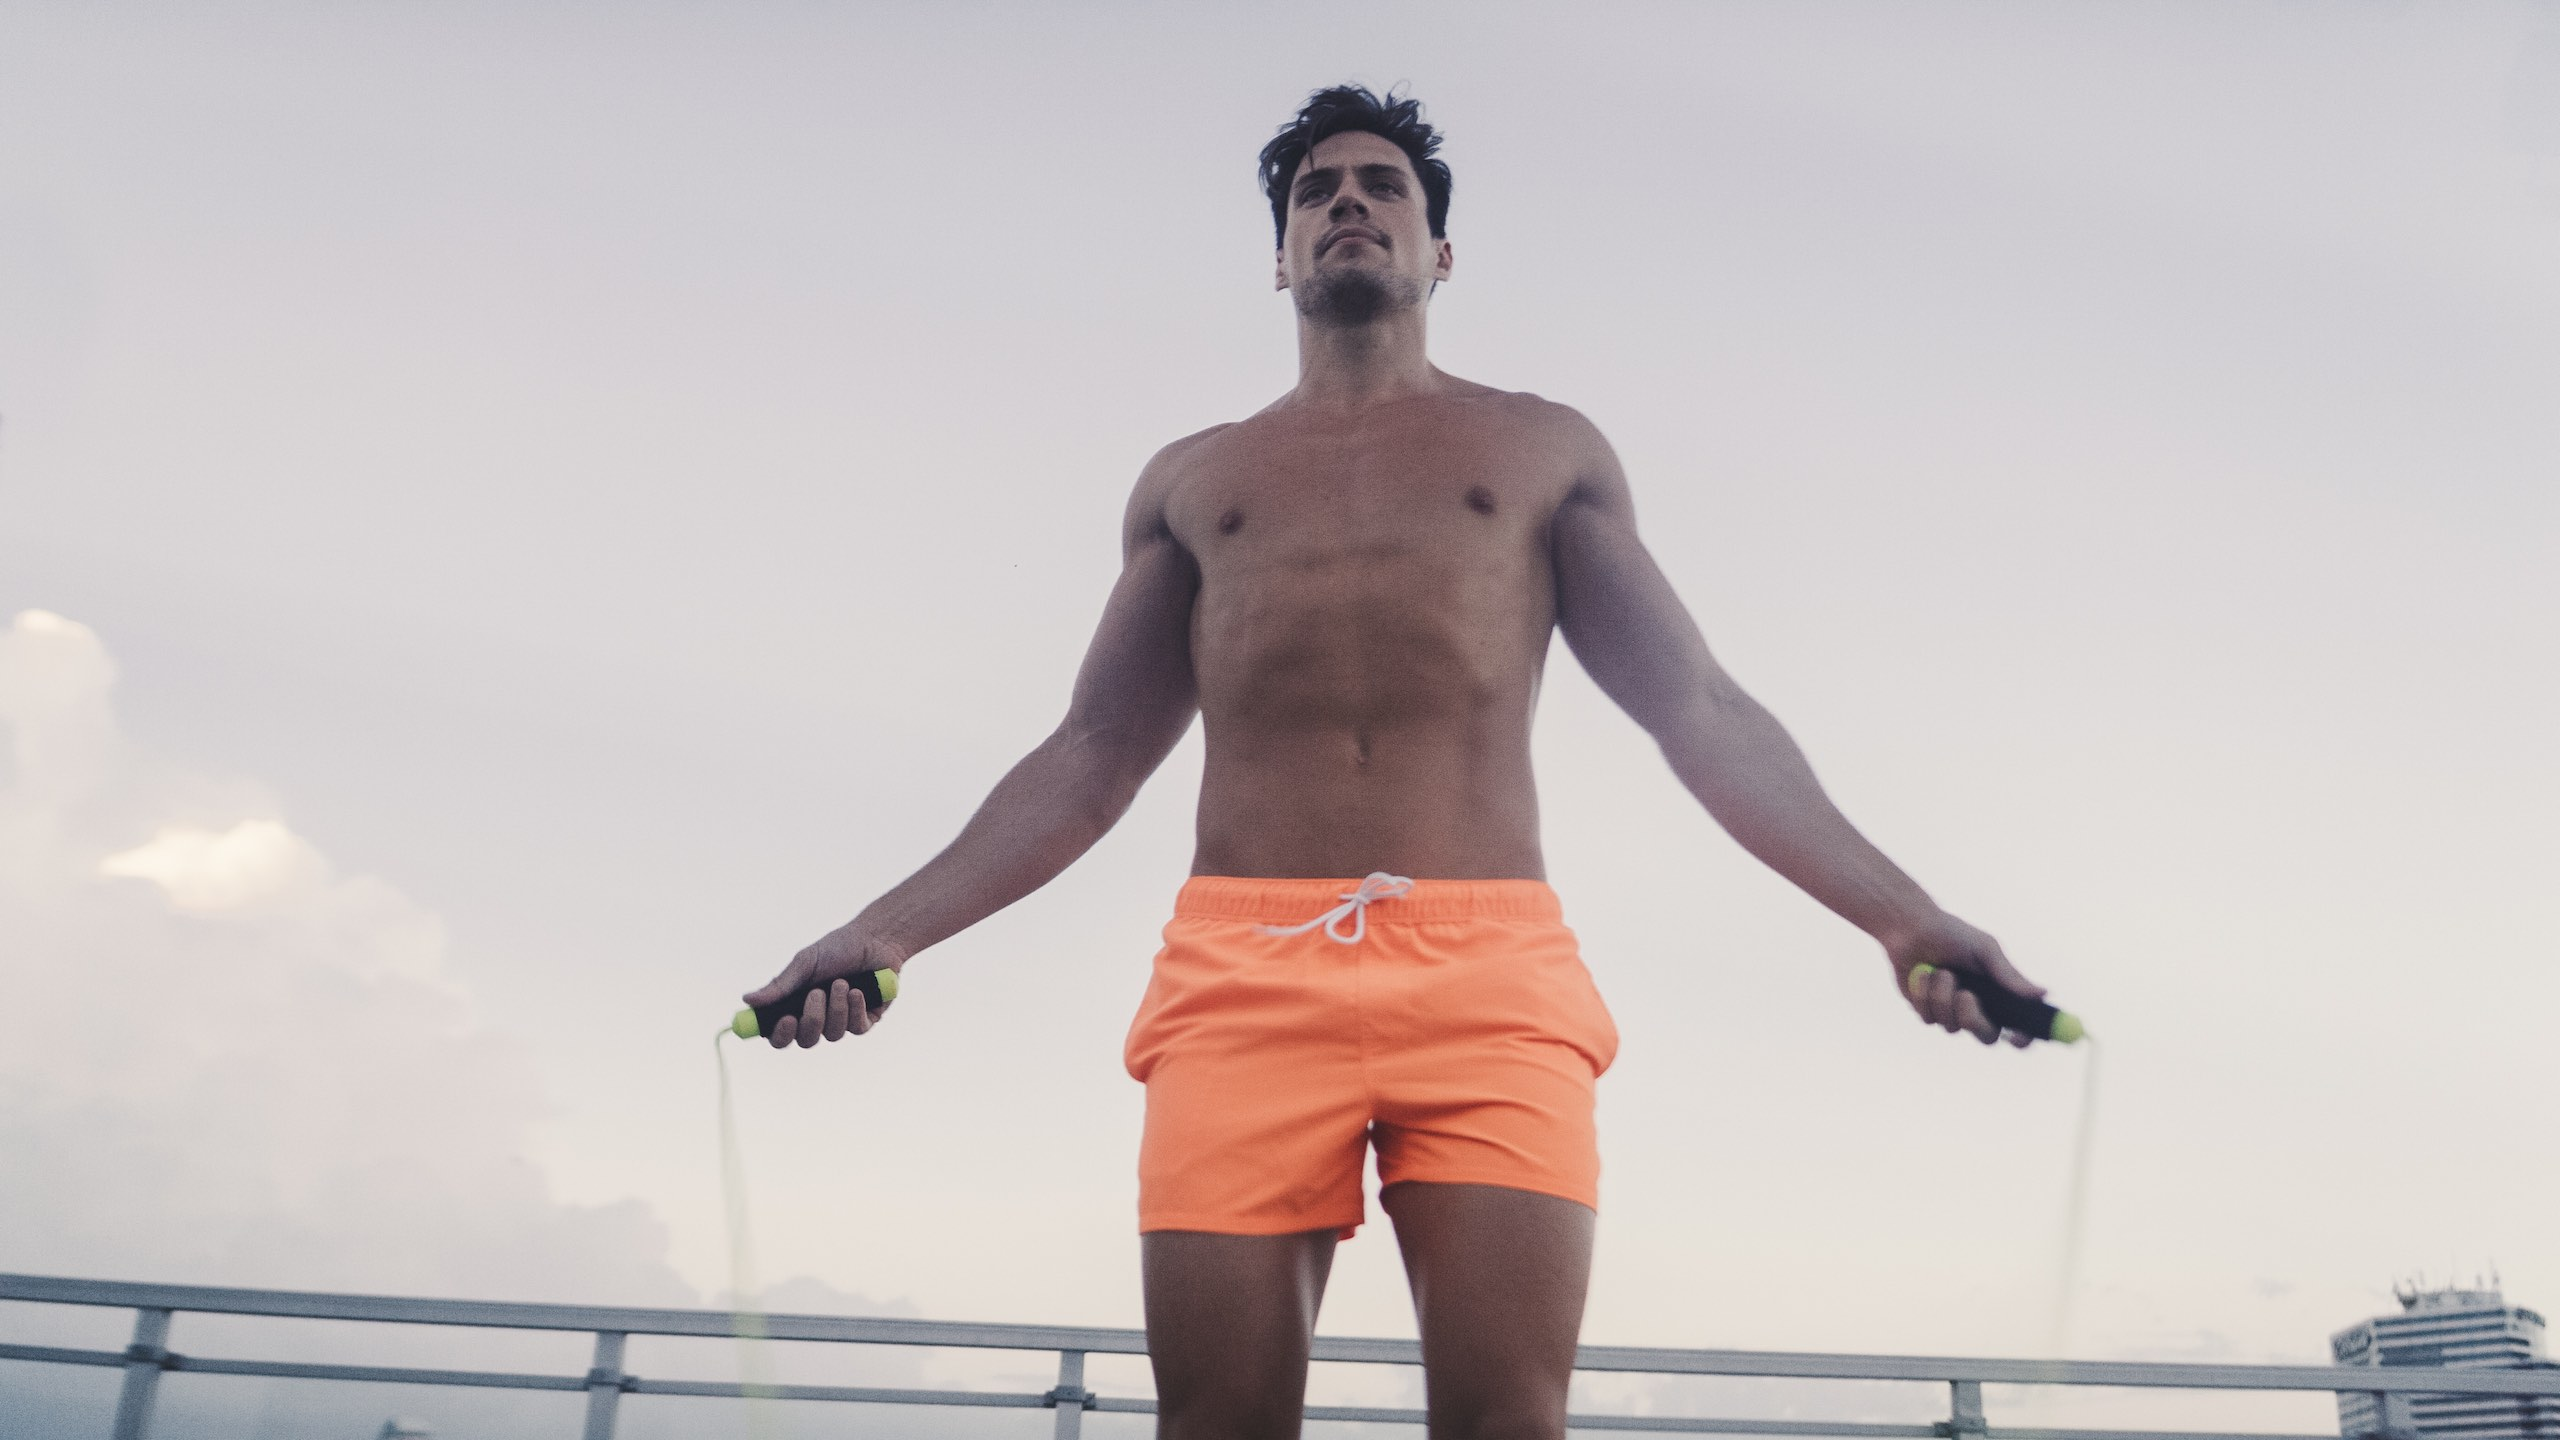 A Man In Orange Shorts Exercises With A Jump Rope Showing Extra Morning Energy.